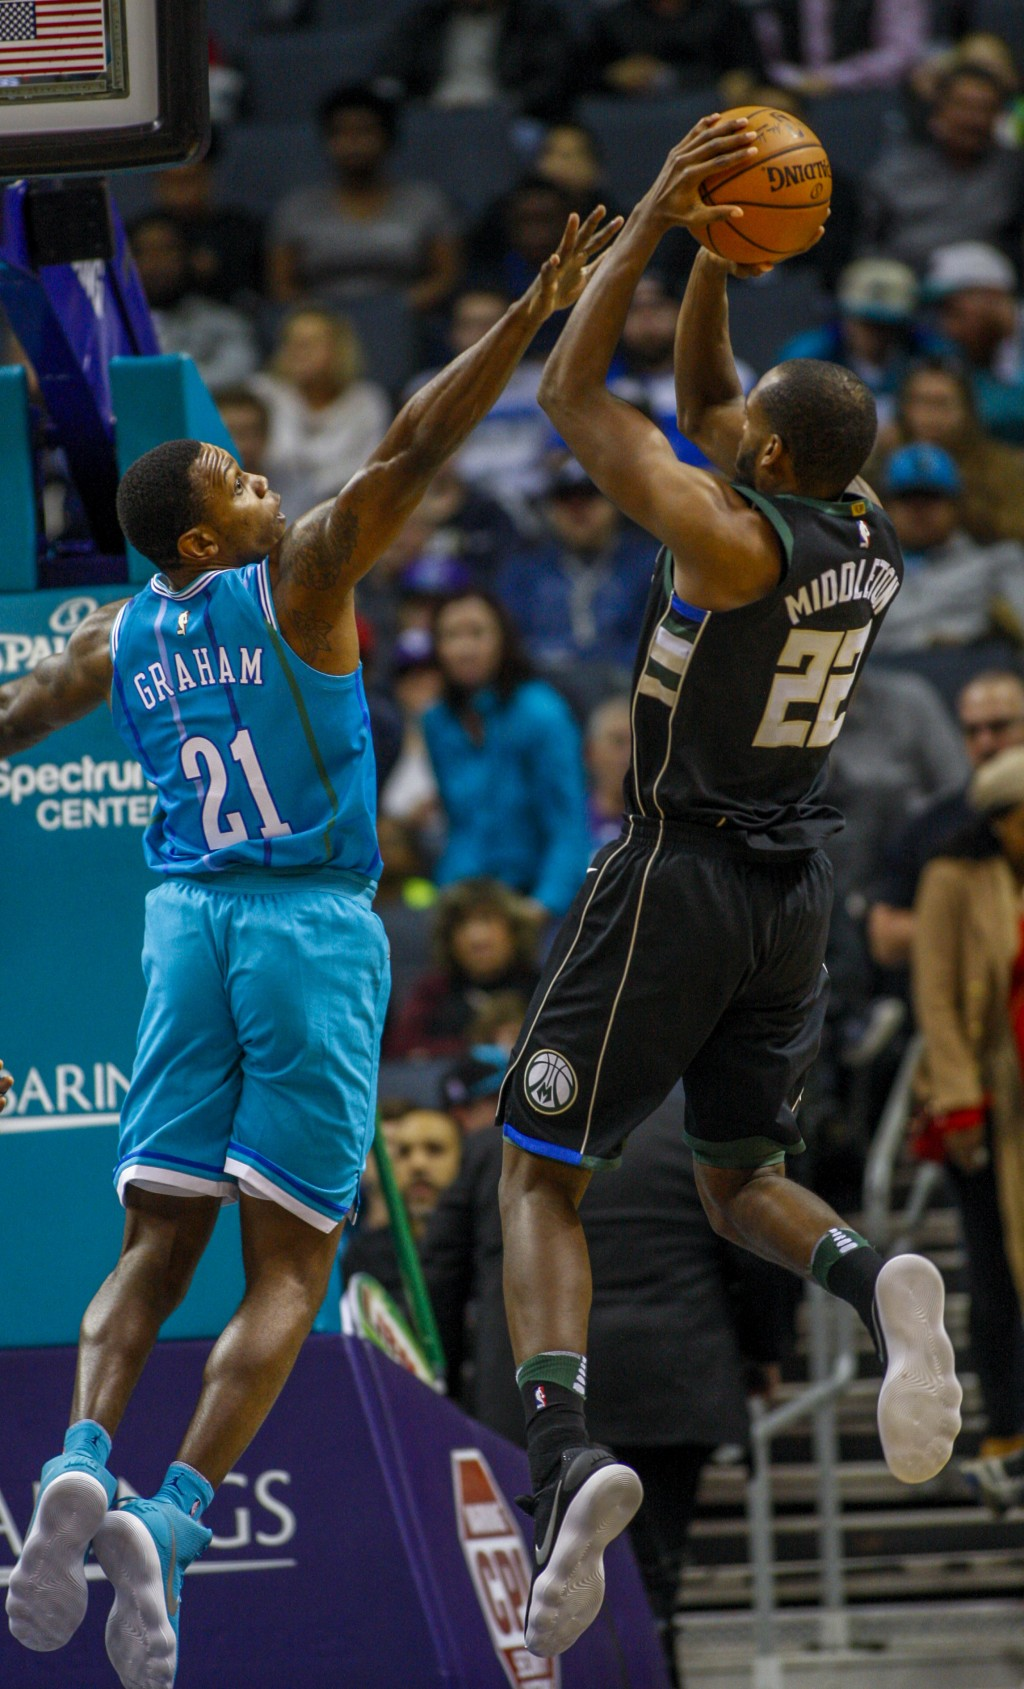 Milwaukee Bucks forward Khris Middleton, right, shoots over Charlotte Hornets guard Treveon Graham in the first half of an NBA basketball game in Char...